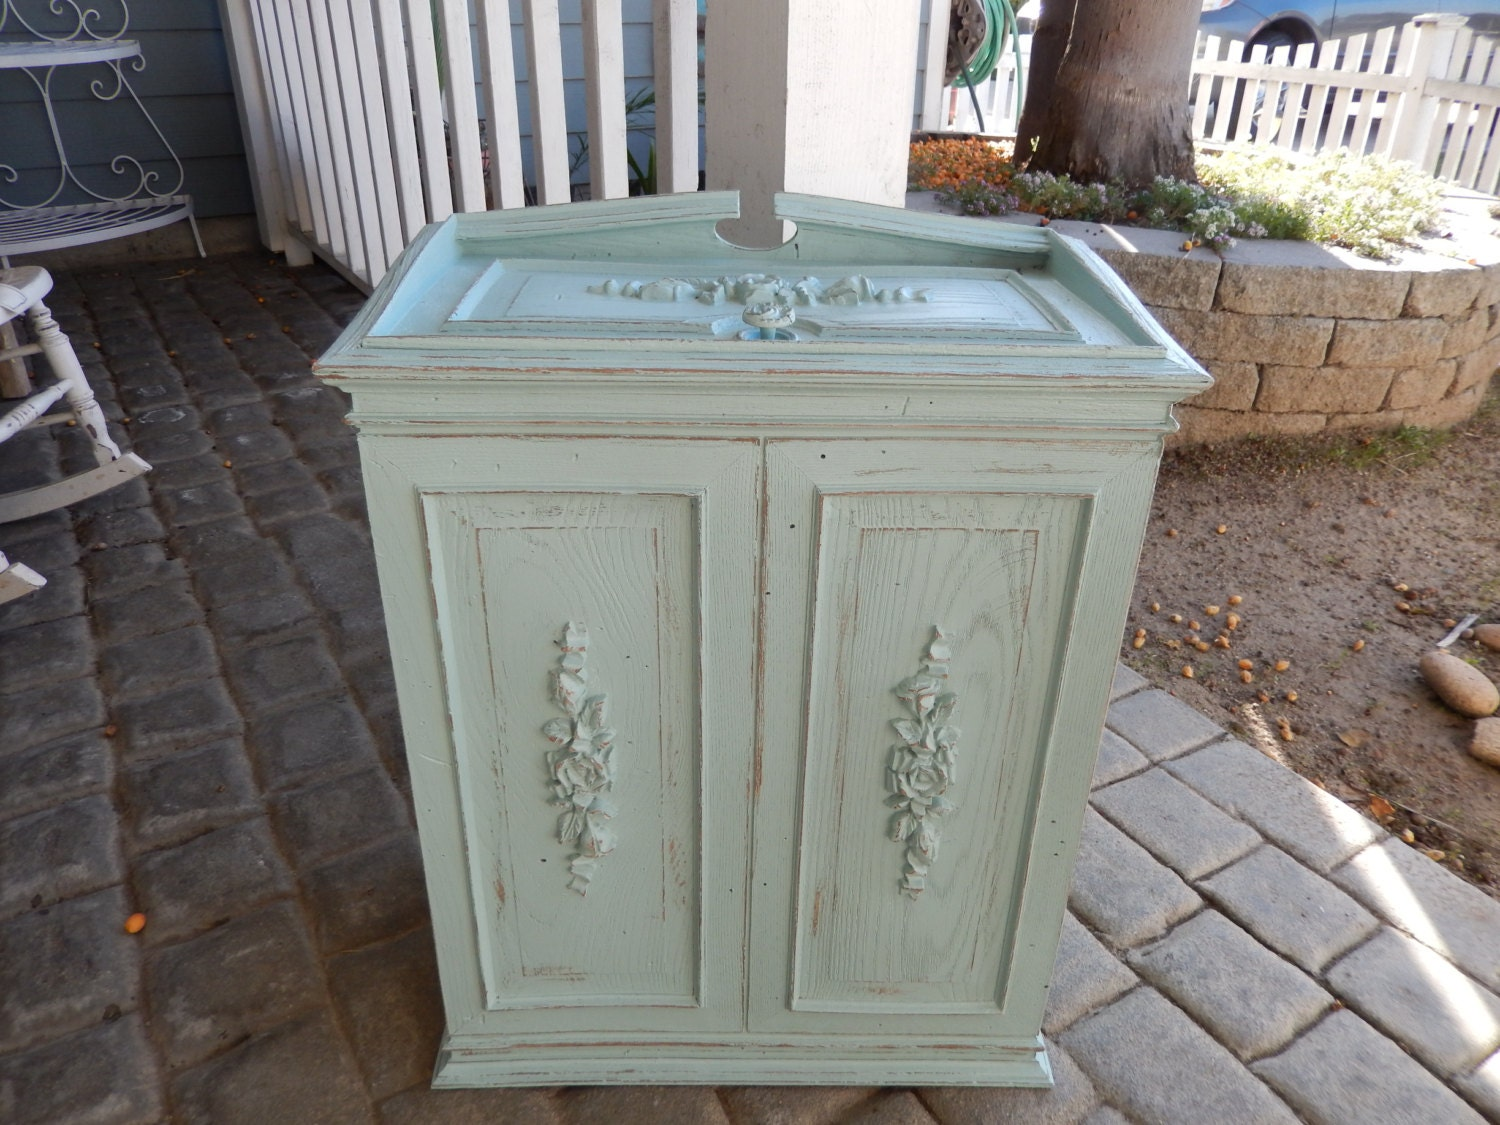 Detecto Metal Laundry Hamper: Clothing Hamper From The 1970s Repainted In Tiffany Blue